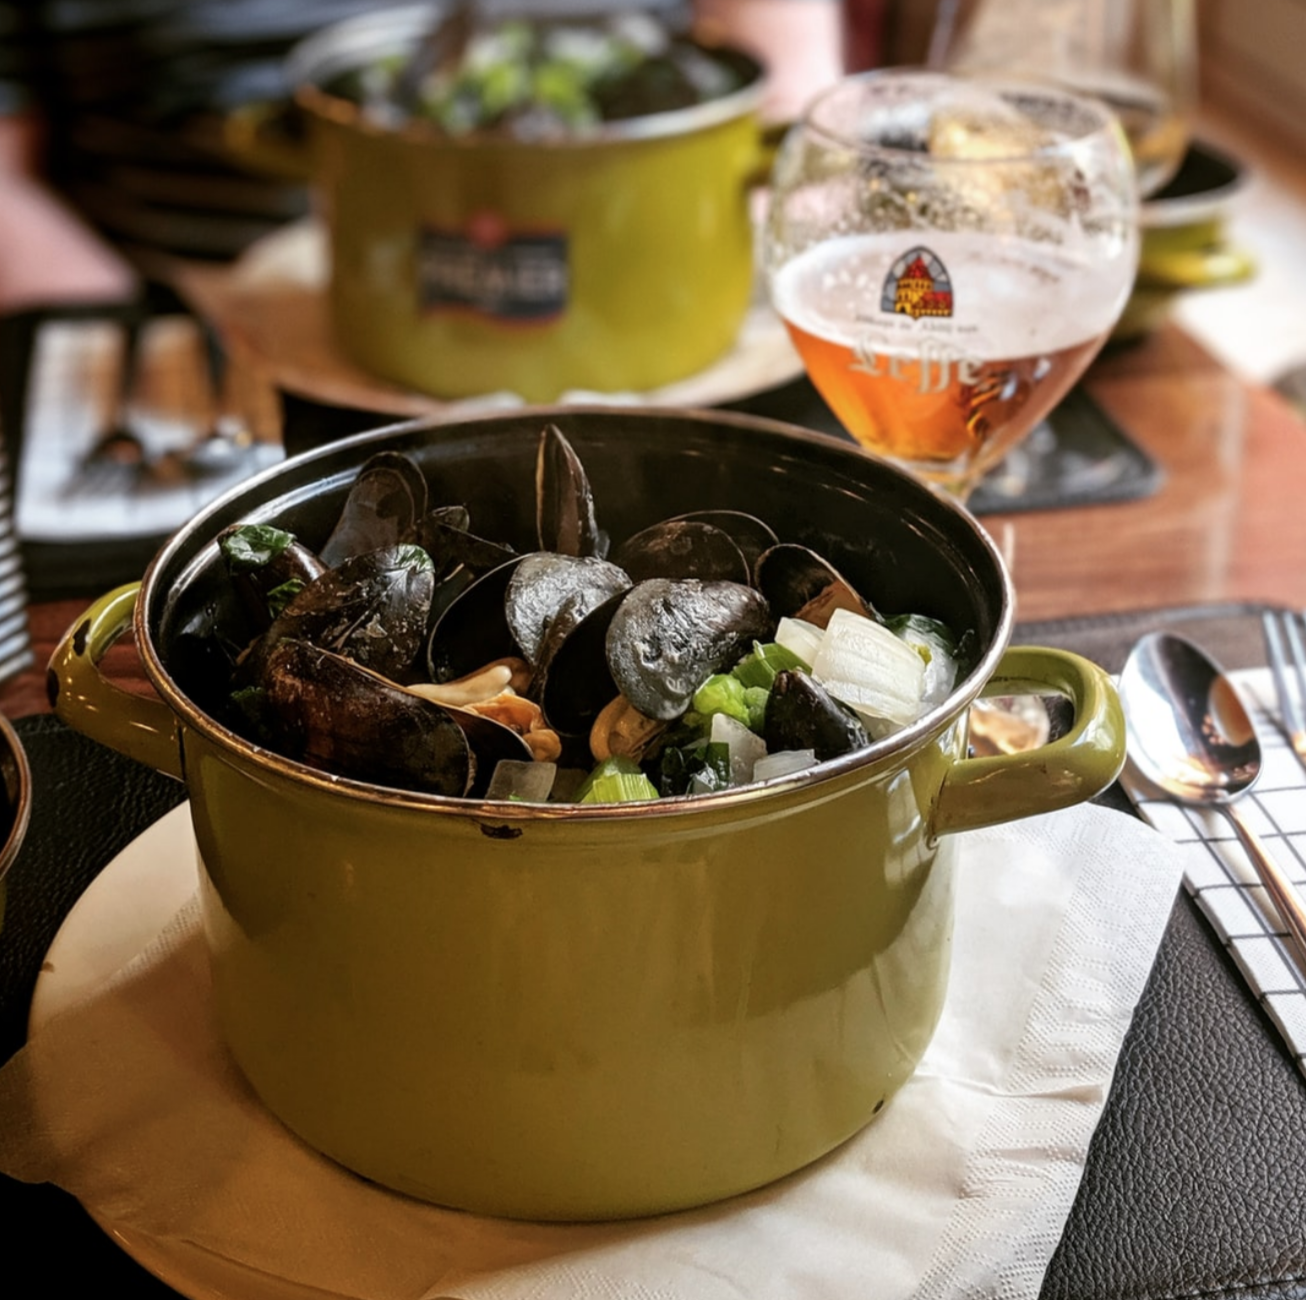 Mussels in a Pot